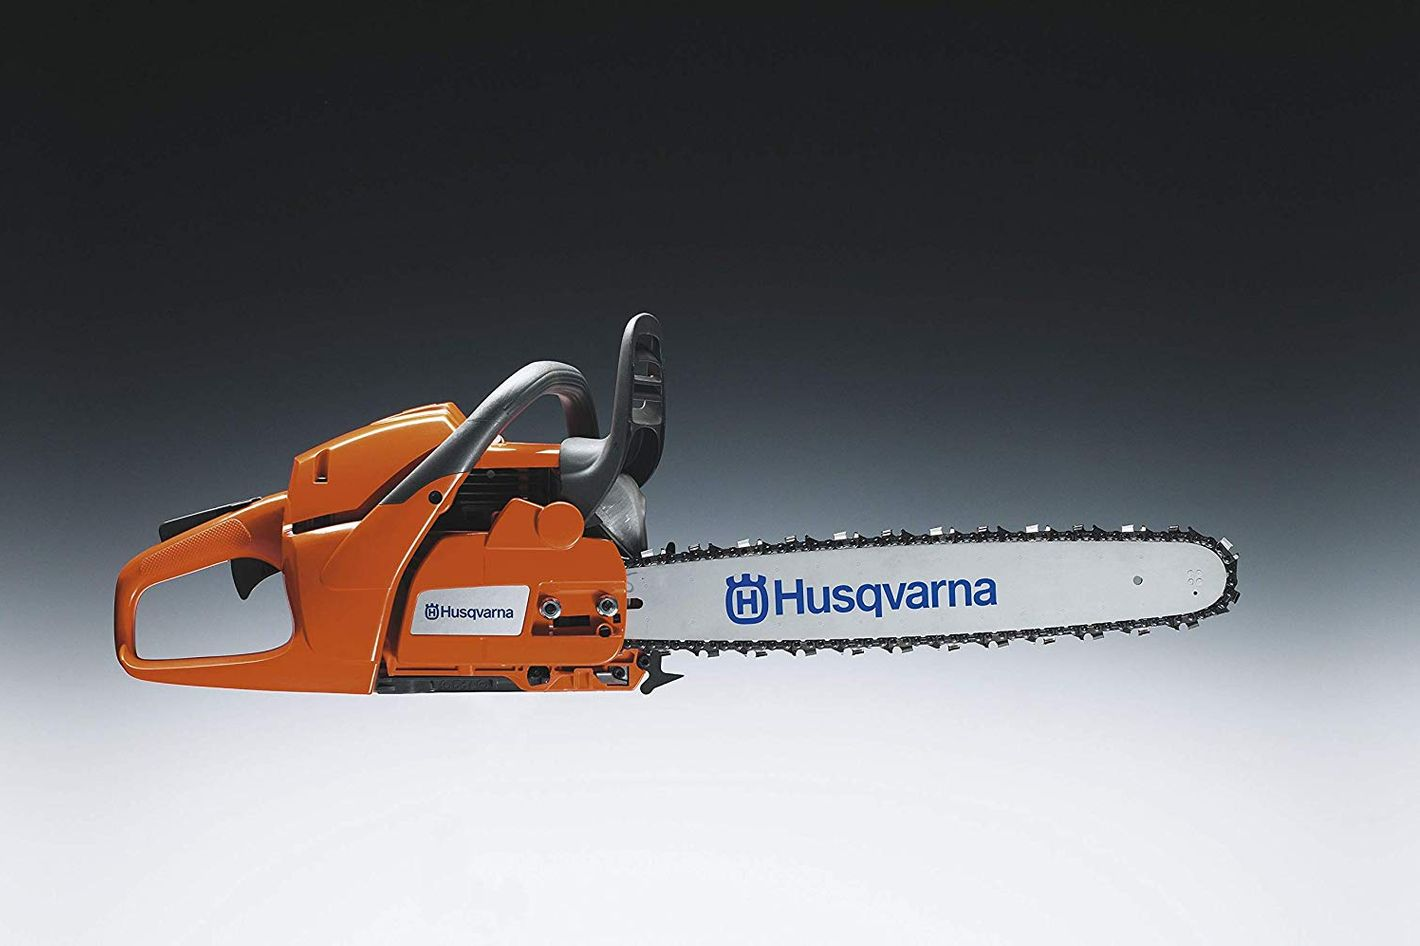 Husqvarna 455 Rancher 20-Inch 2-Stroke Gas-Powered Chainsaw